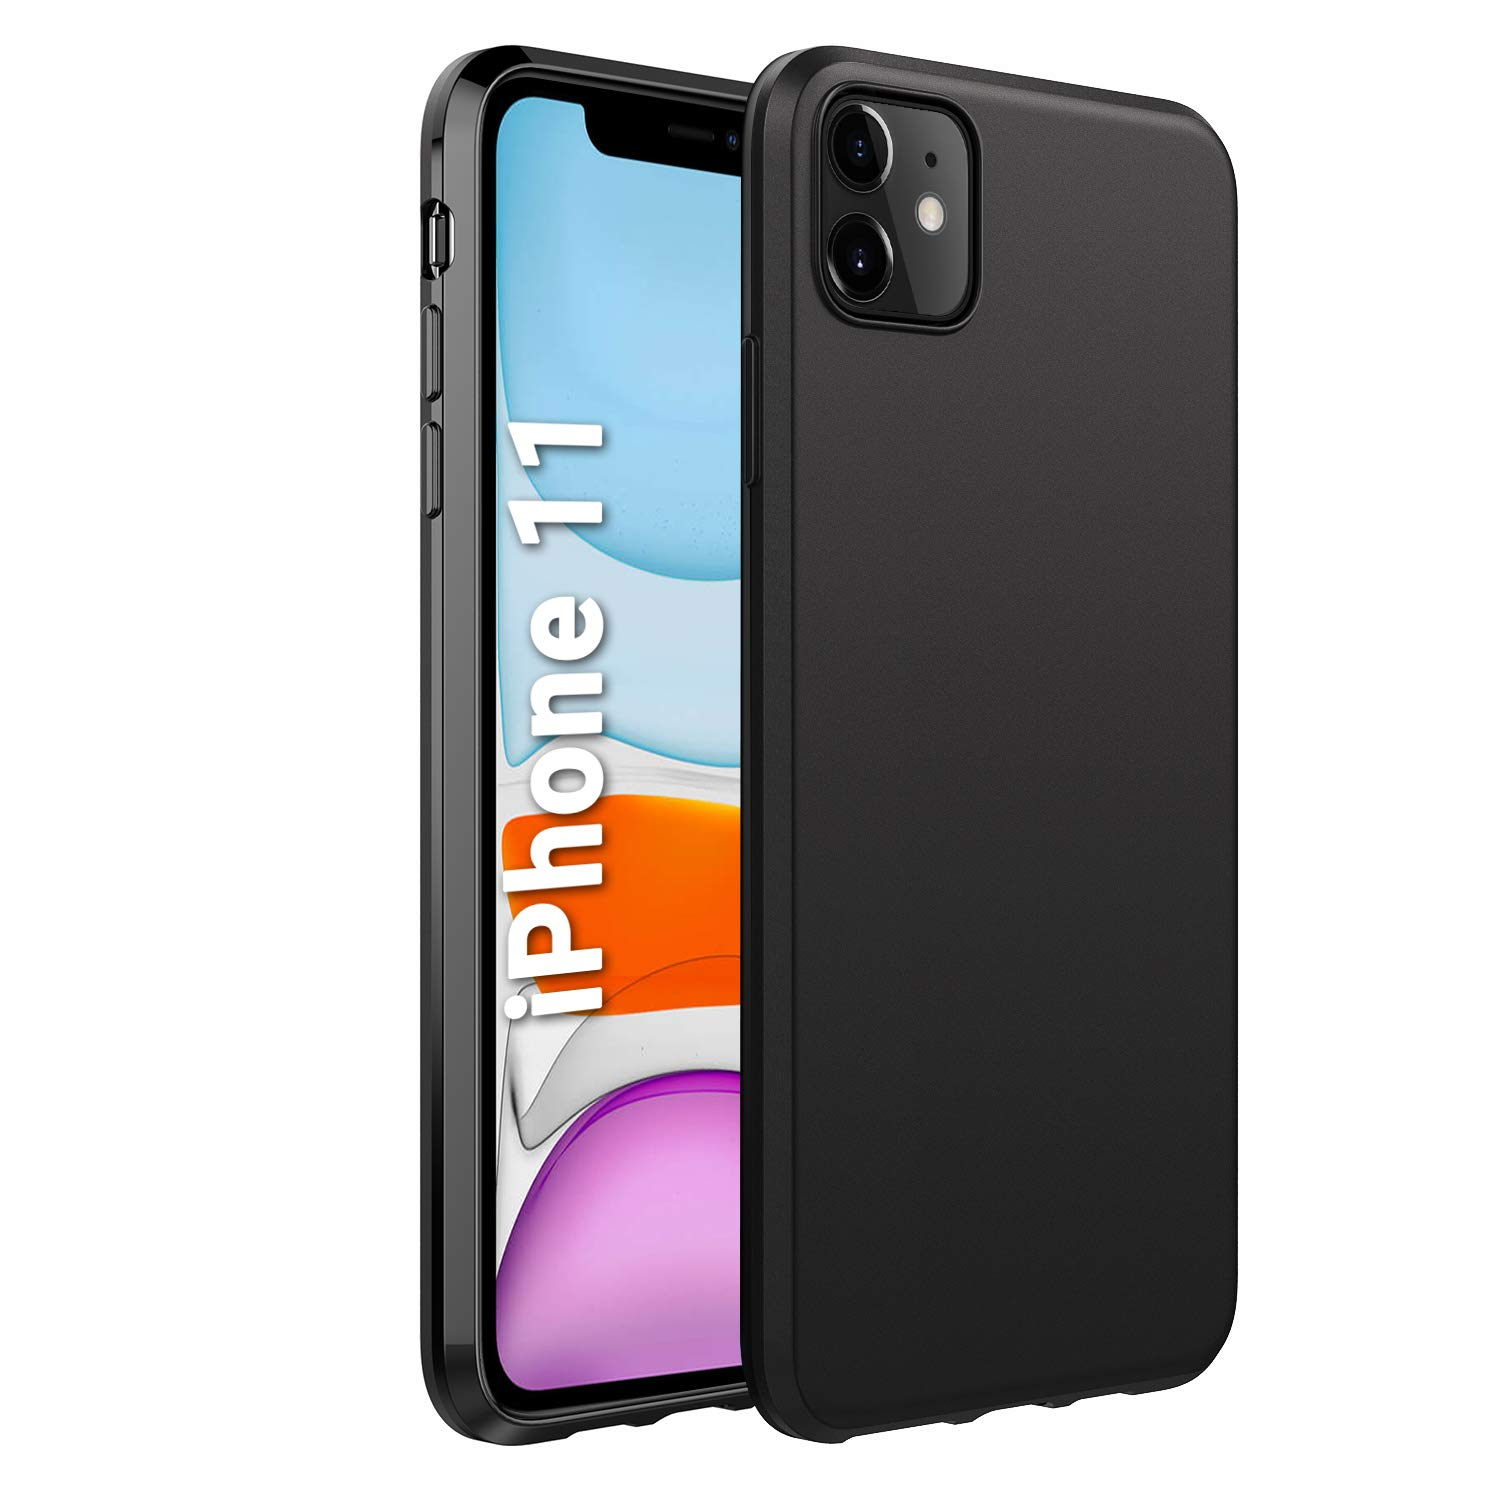 EasyAcc Slim Case for iPhone 11, Matte Black Ultra Thin Fit TPU Phone Cases Finish Profile Soft Back Protective Cover Compatible with iPhone 11 6.1 2019